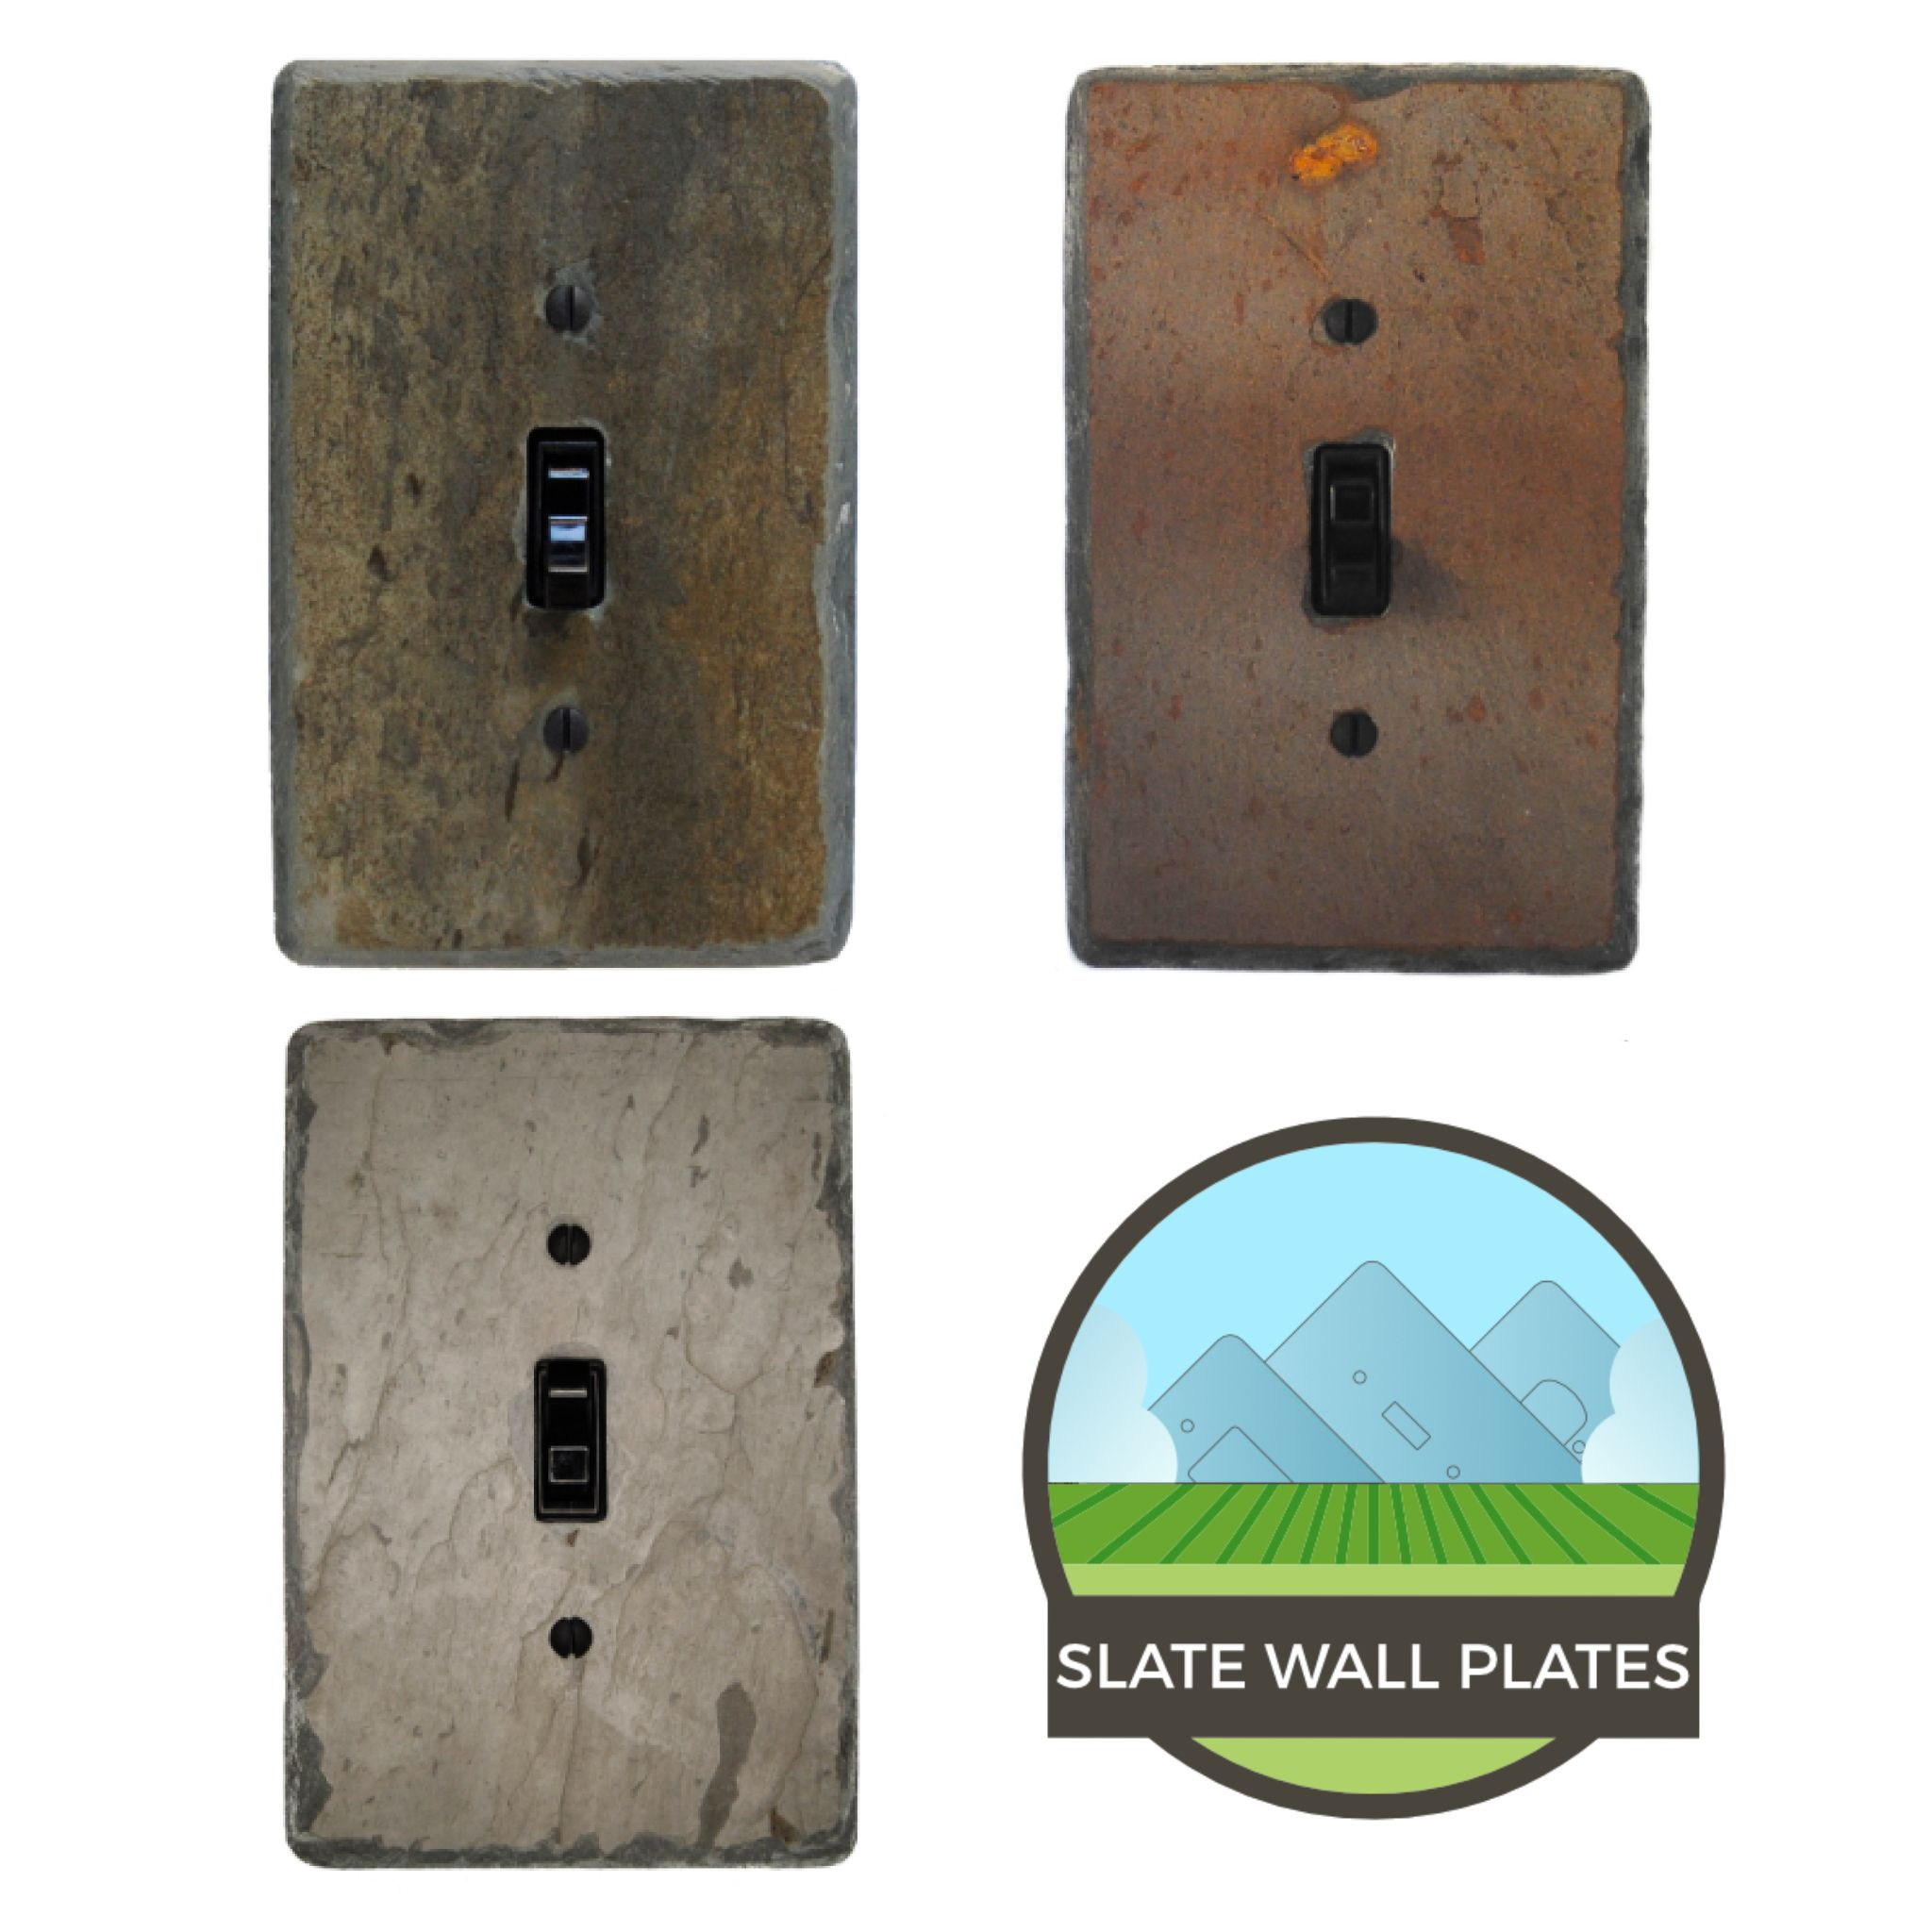 Creators Of Handcrafted Real Natural Stone Light Switch And Outlet